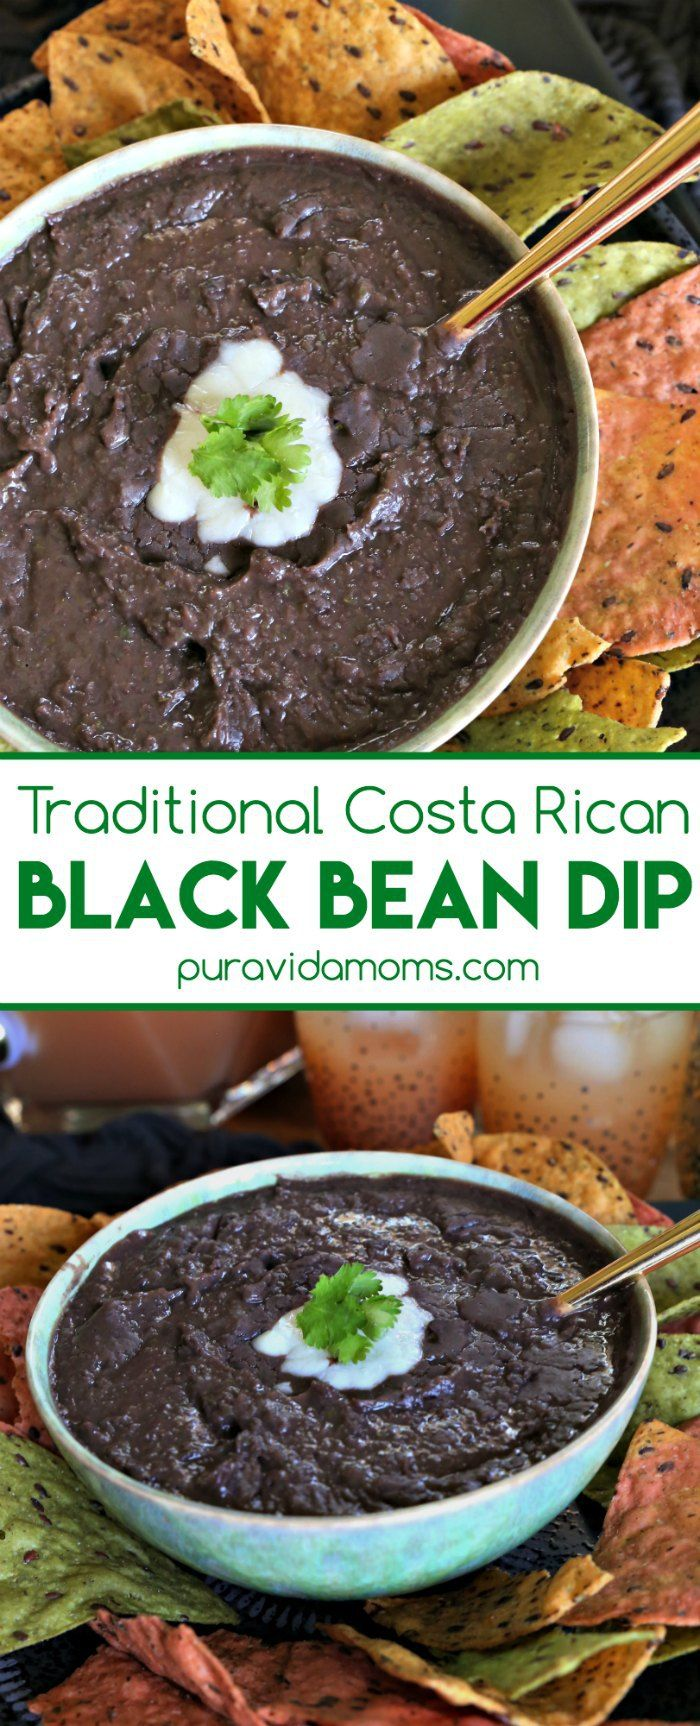 This Traditional Costa Rican Black Bean Dip Recipe Is The